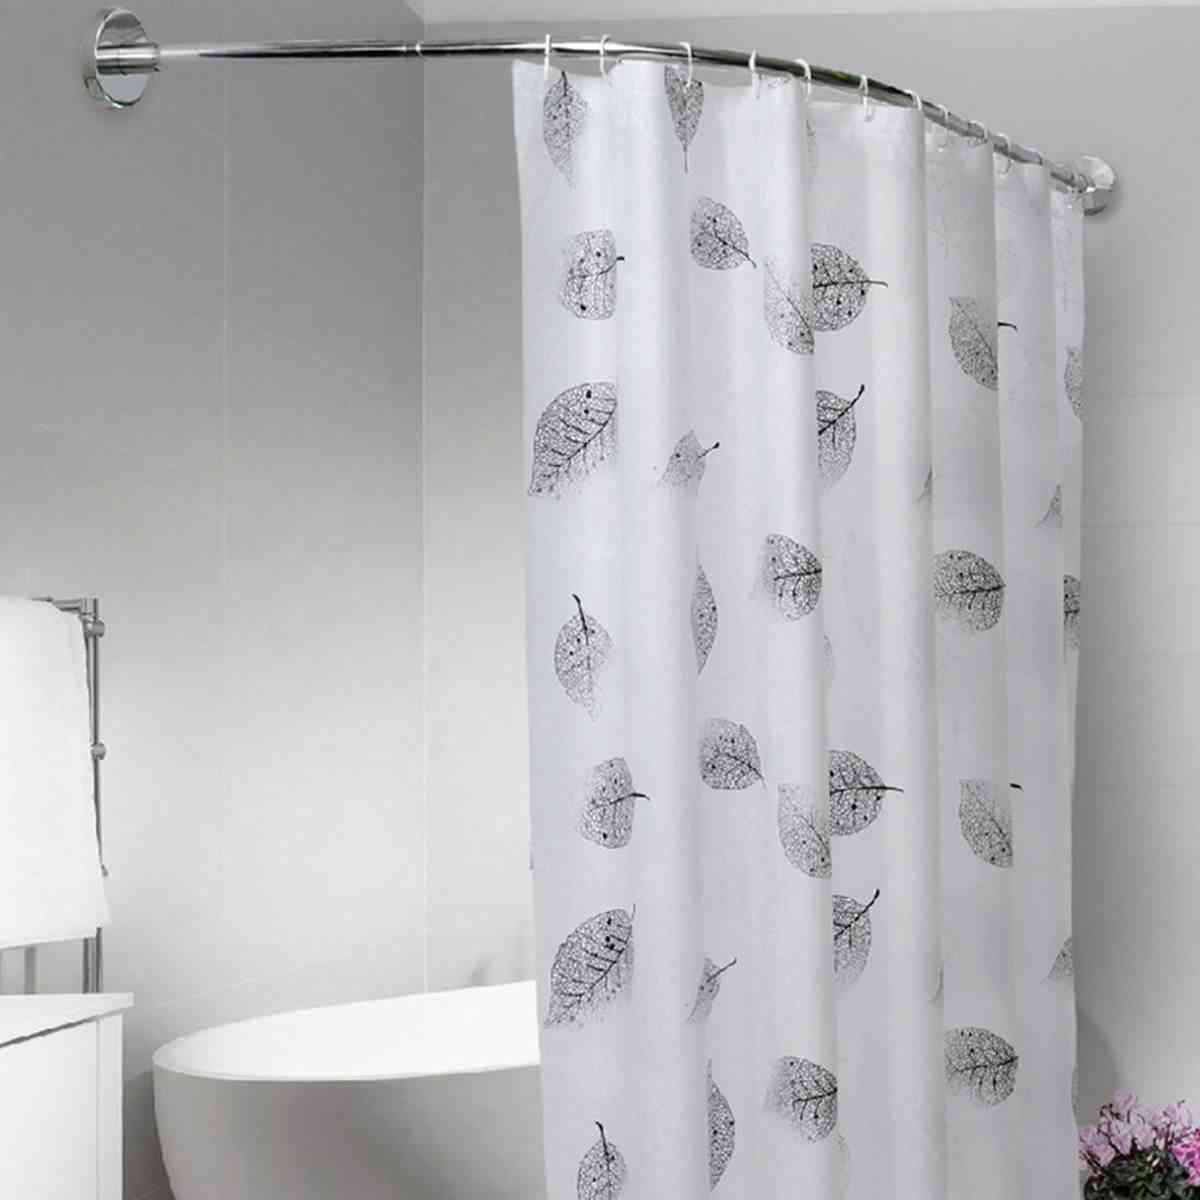 Extendable Curved Shower Curtain Rod U Shaped From Stainless Steel